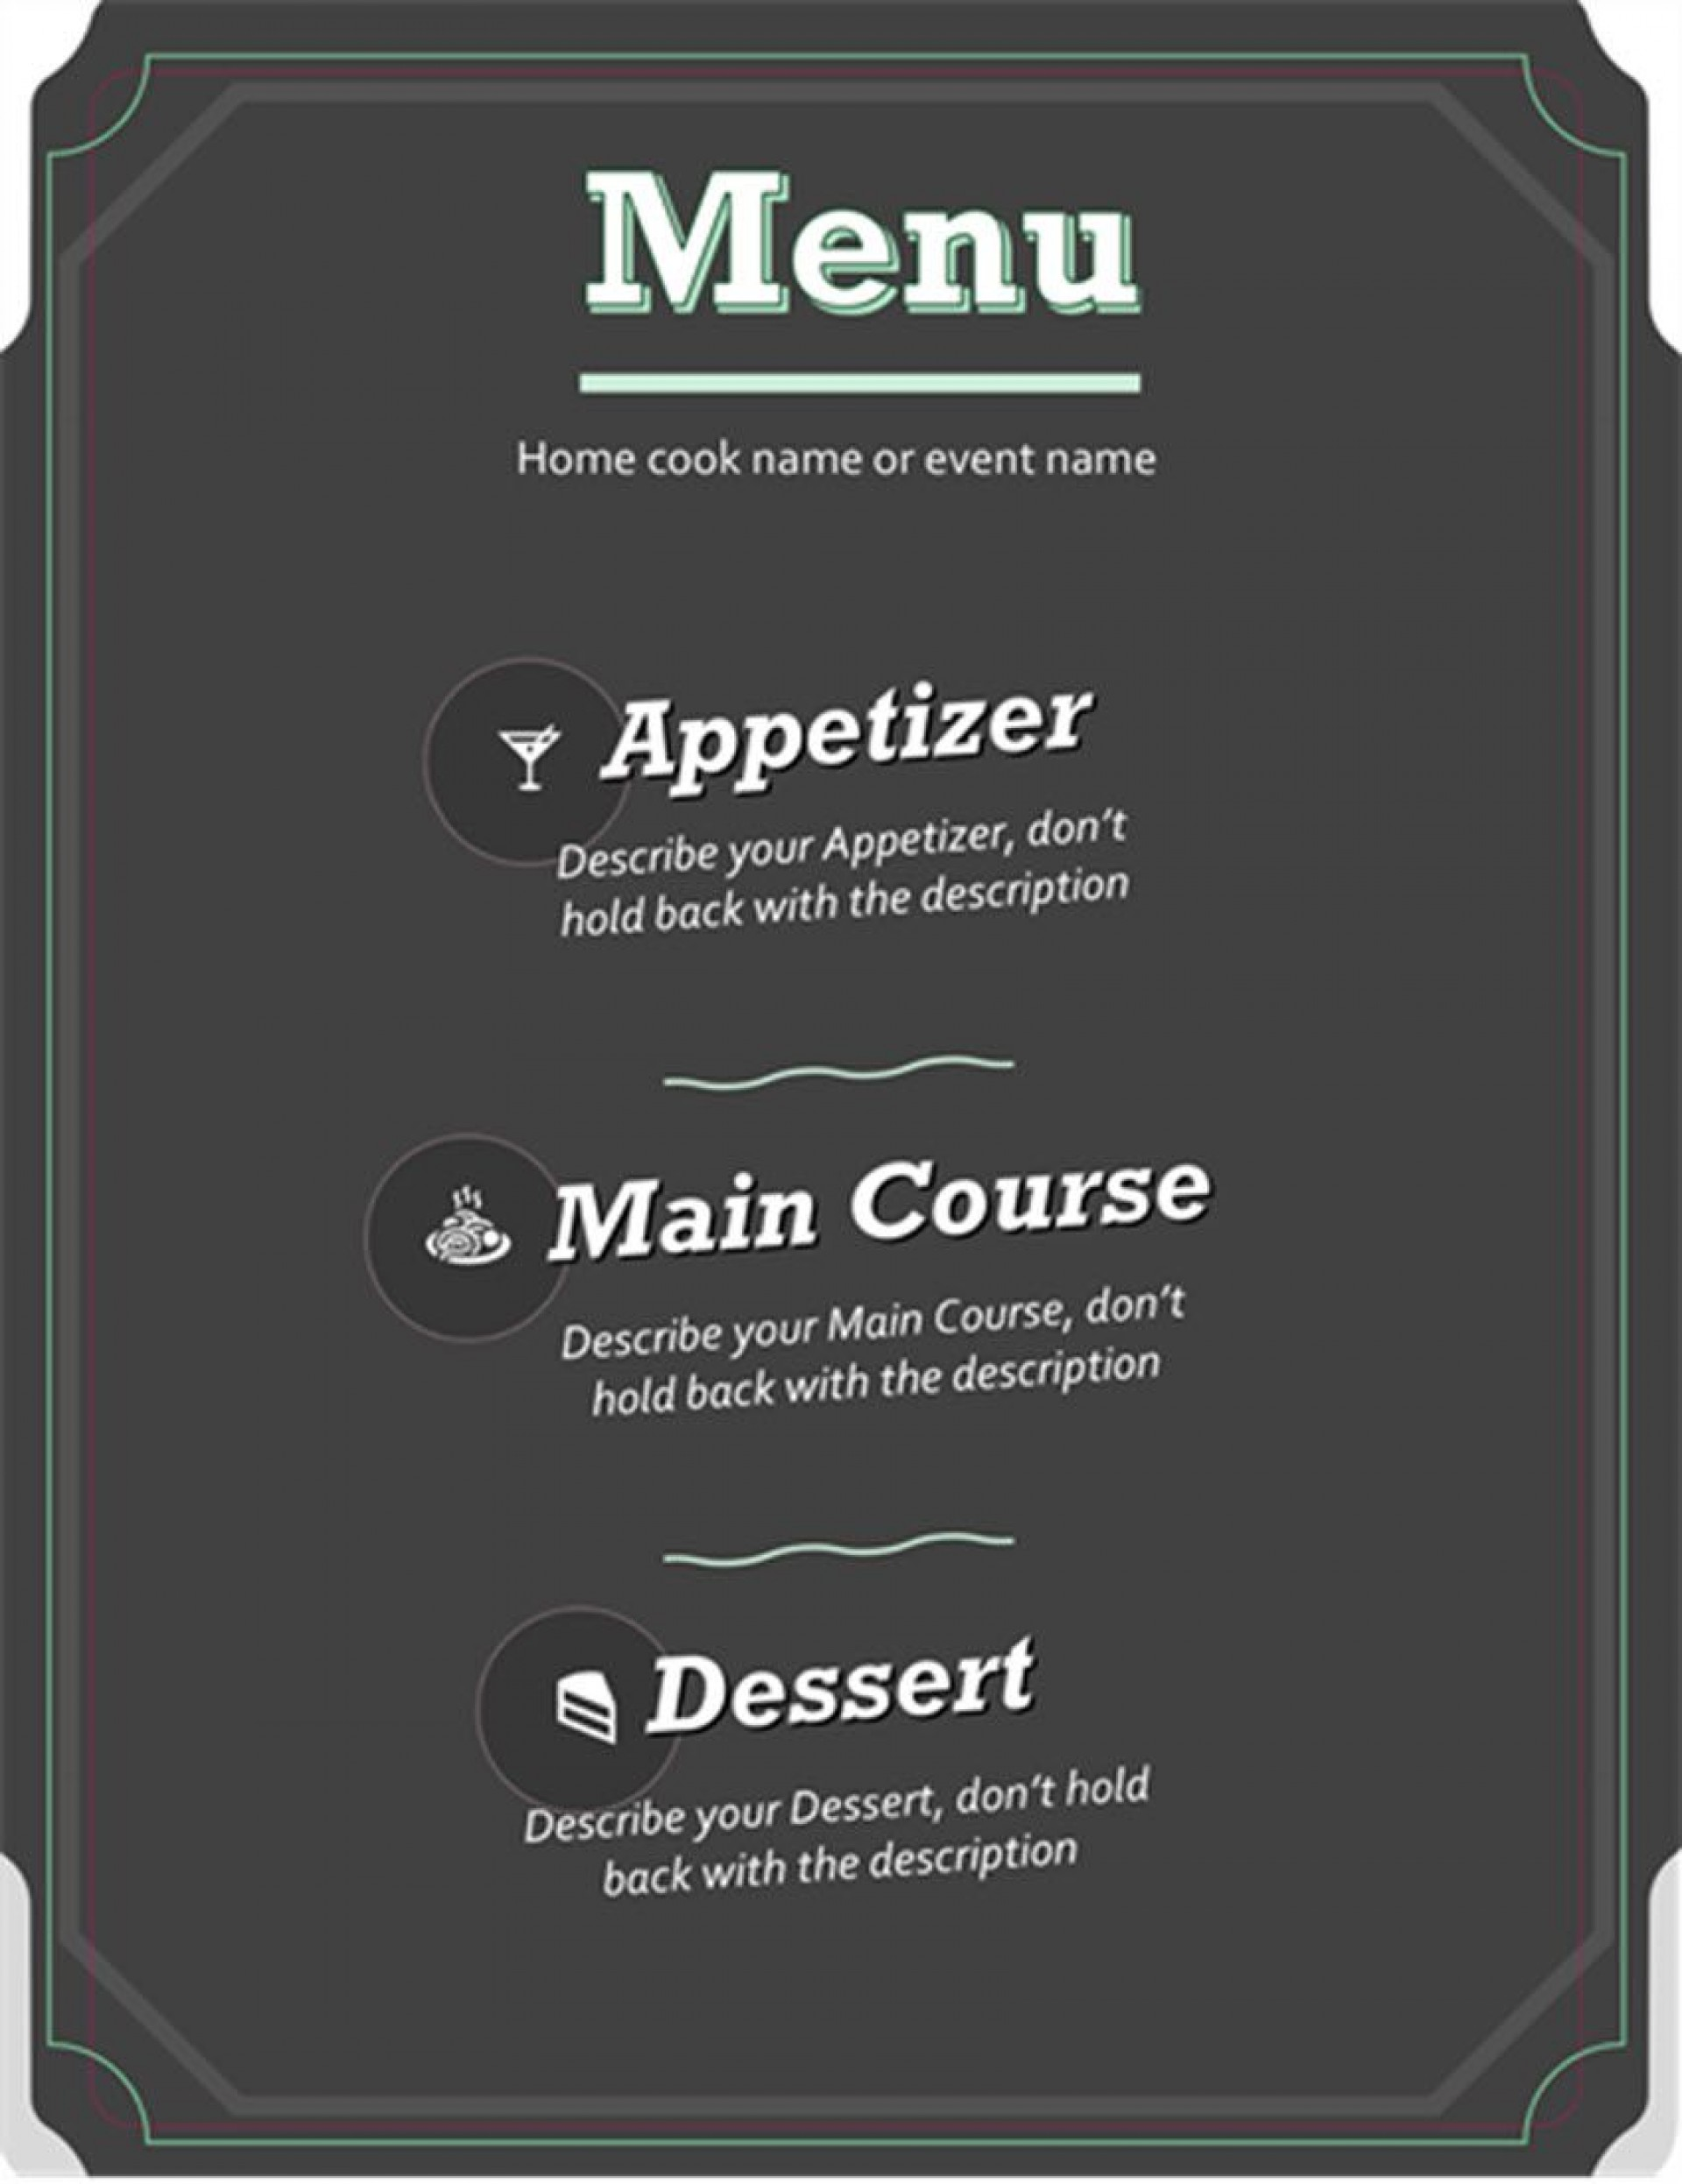 002 Excellent Menu Template Free Download For Restaurant Highest Clarity  Word Psd1920